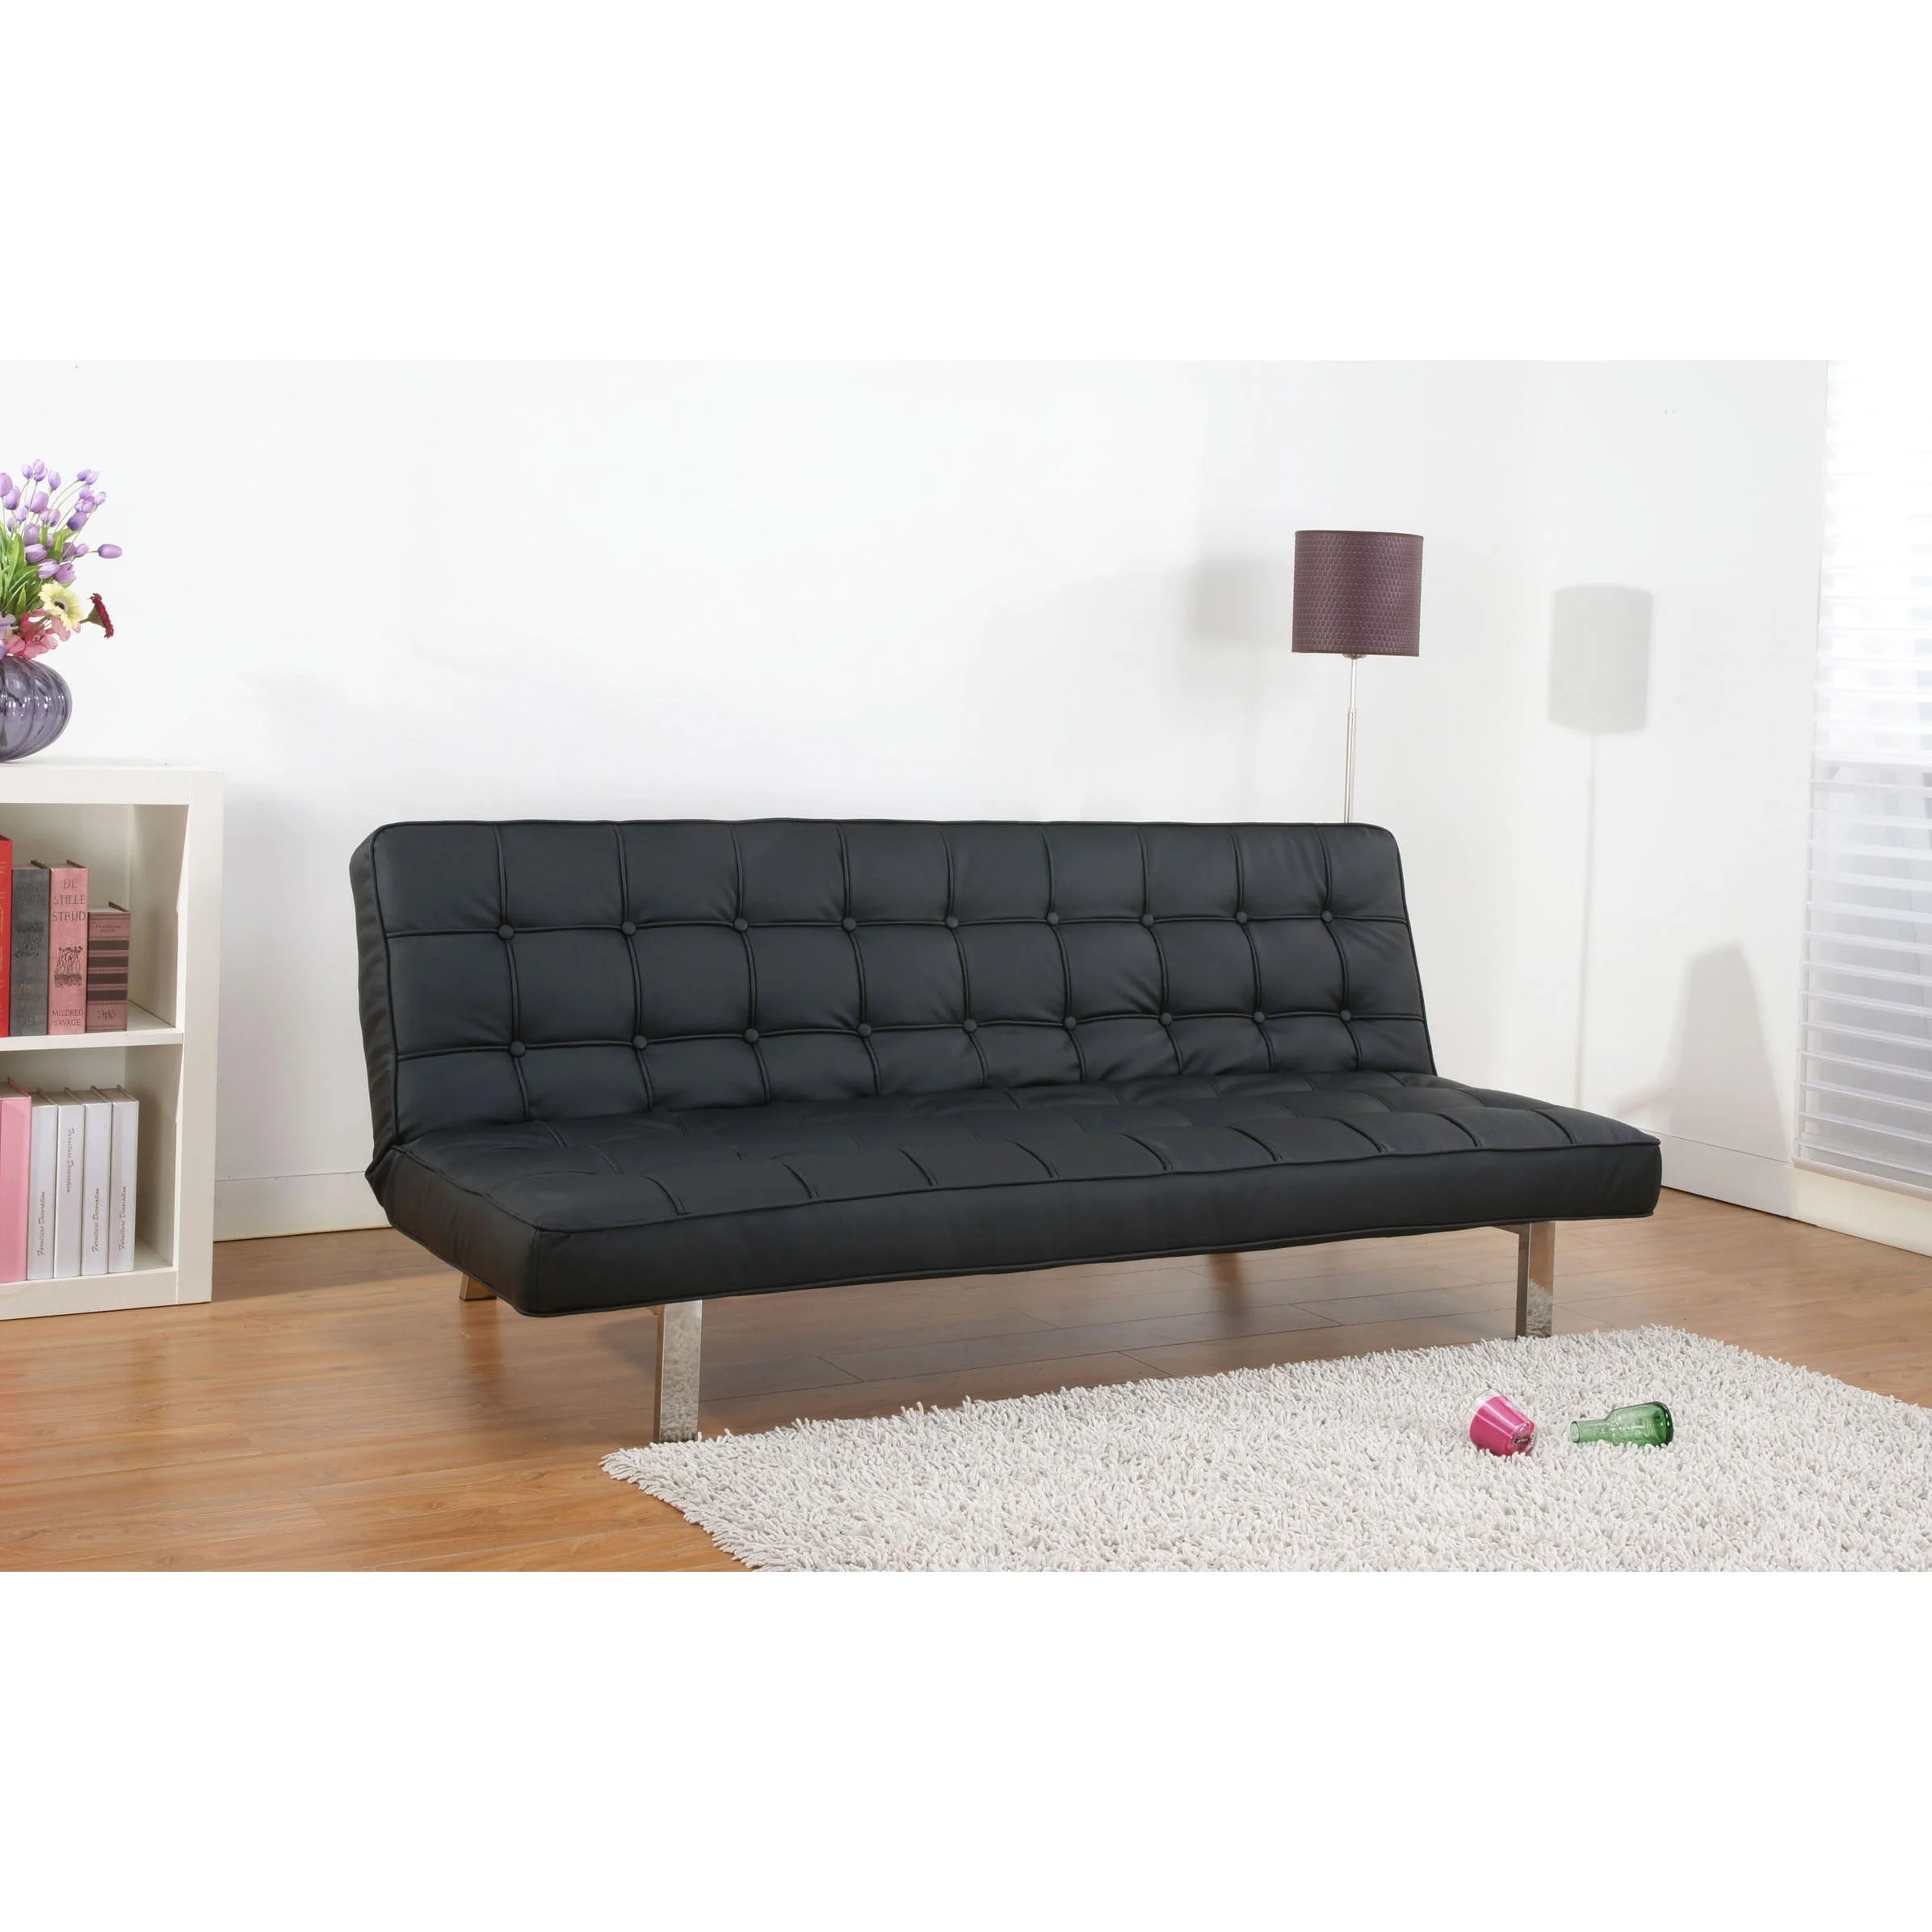 custom sectional sofas las vegas pale pink sofa for sale black futon bed overstock shopping great